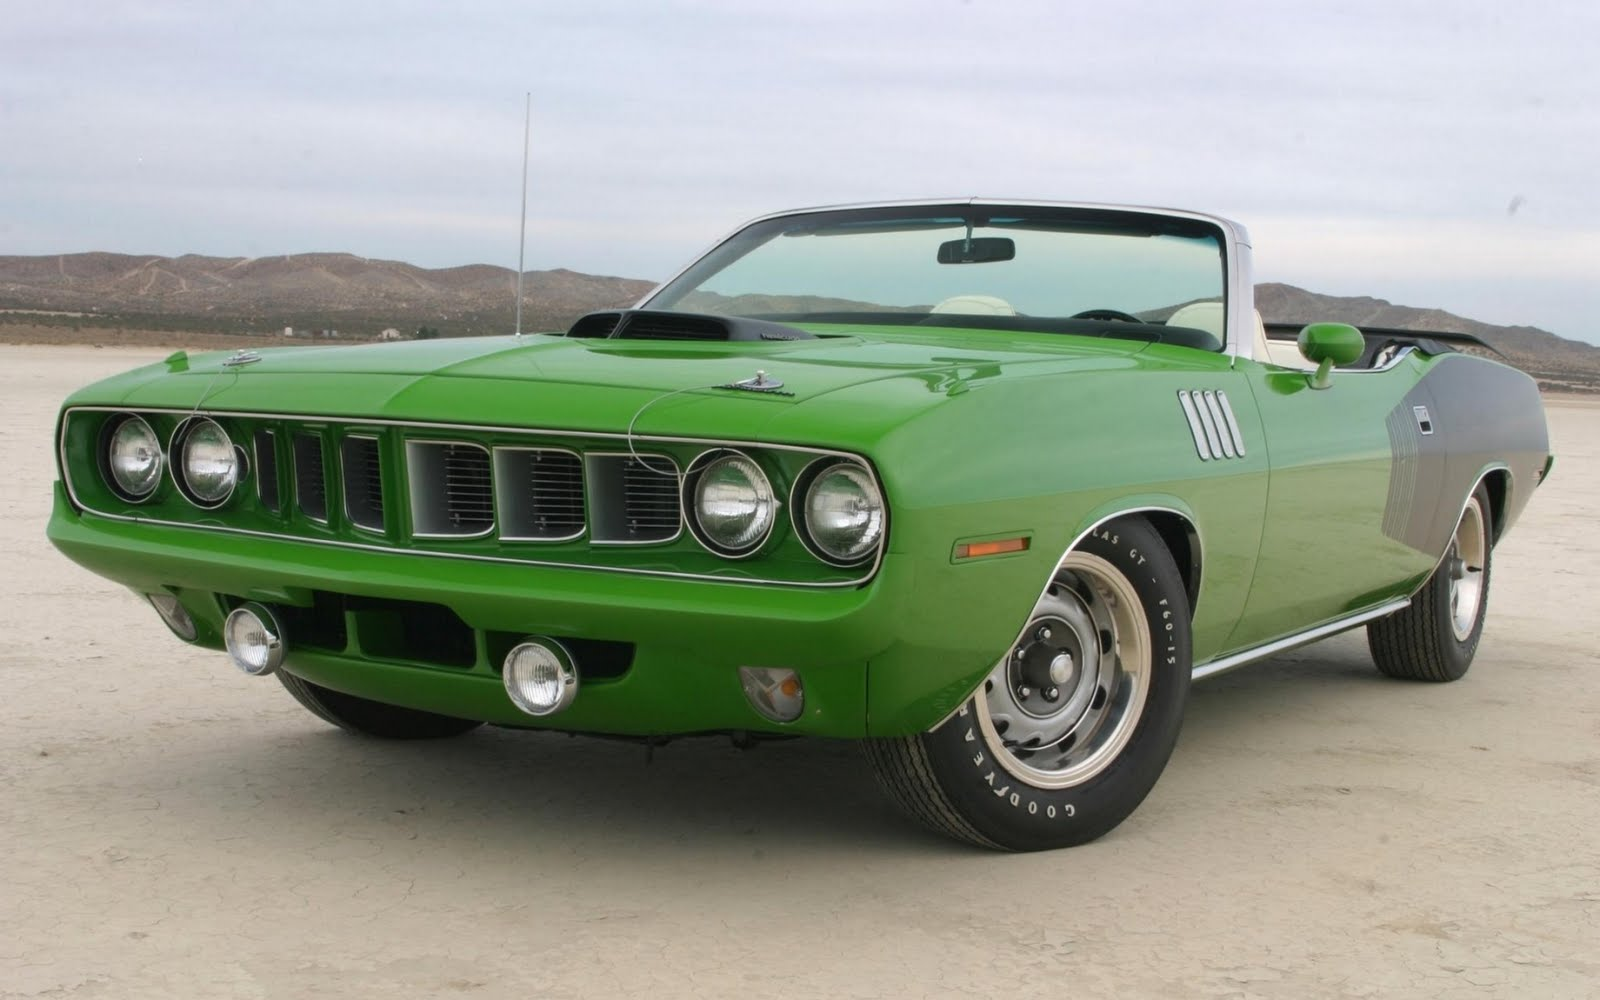 Luxury Cars: Convertible 1971 Plymouth Hemi Cuda Muscle Car Images ...